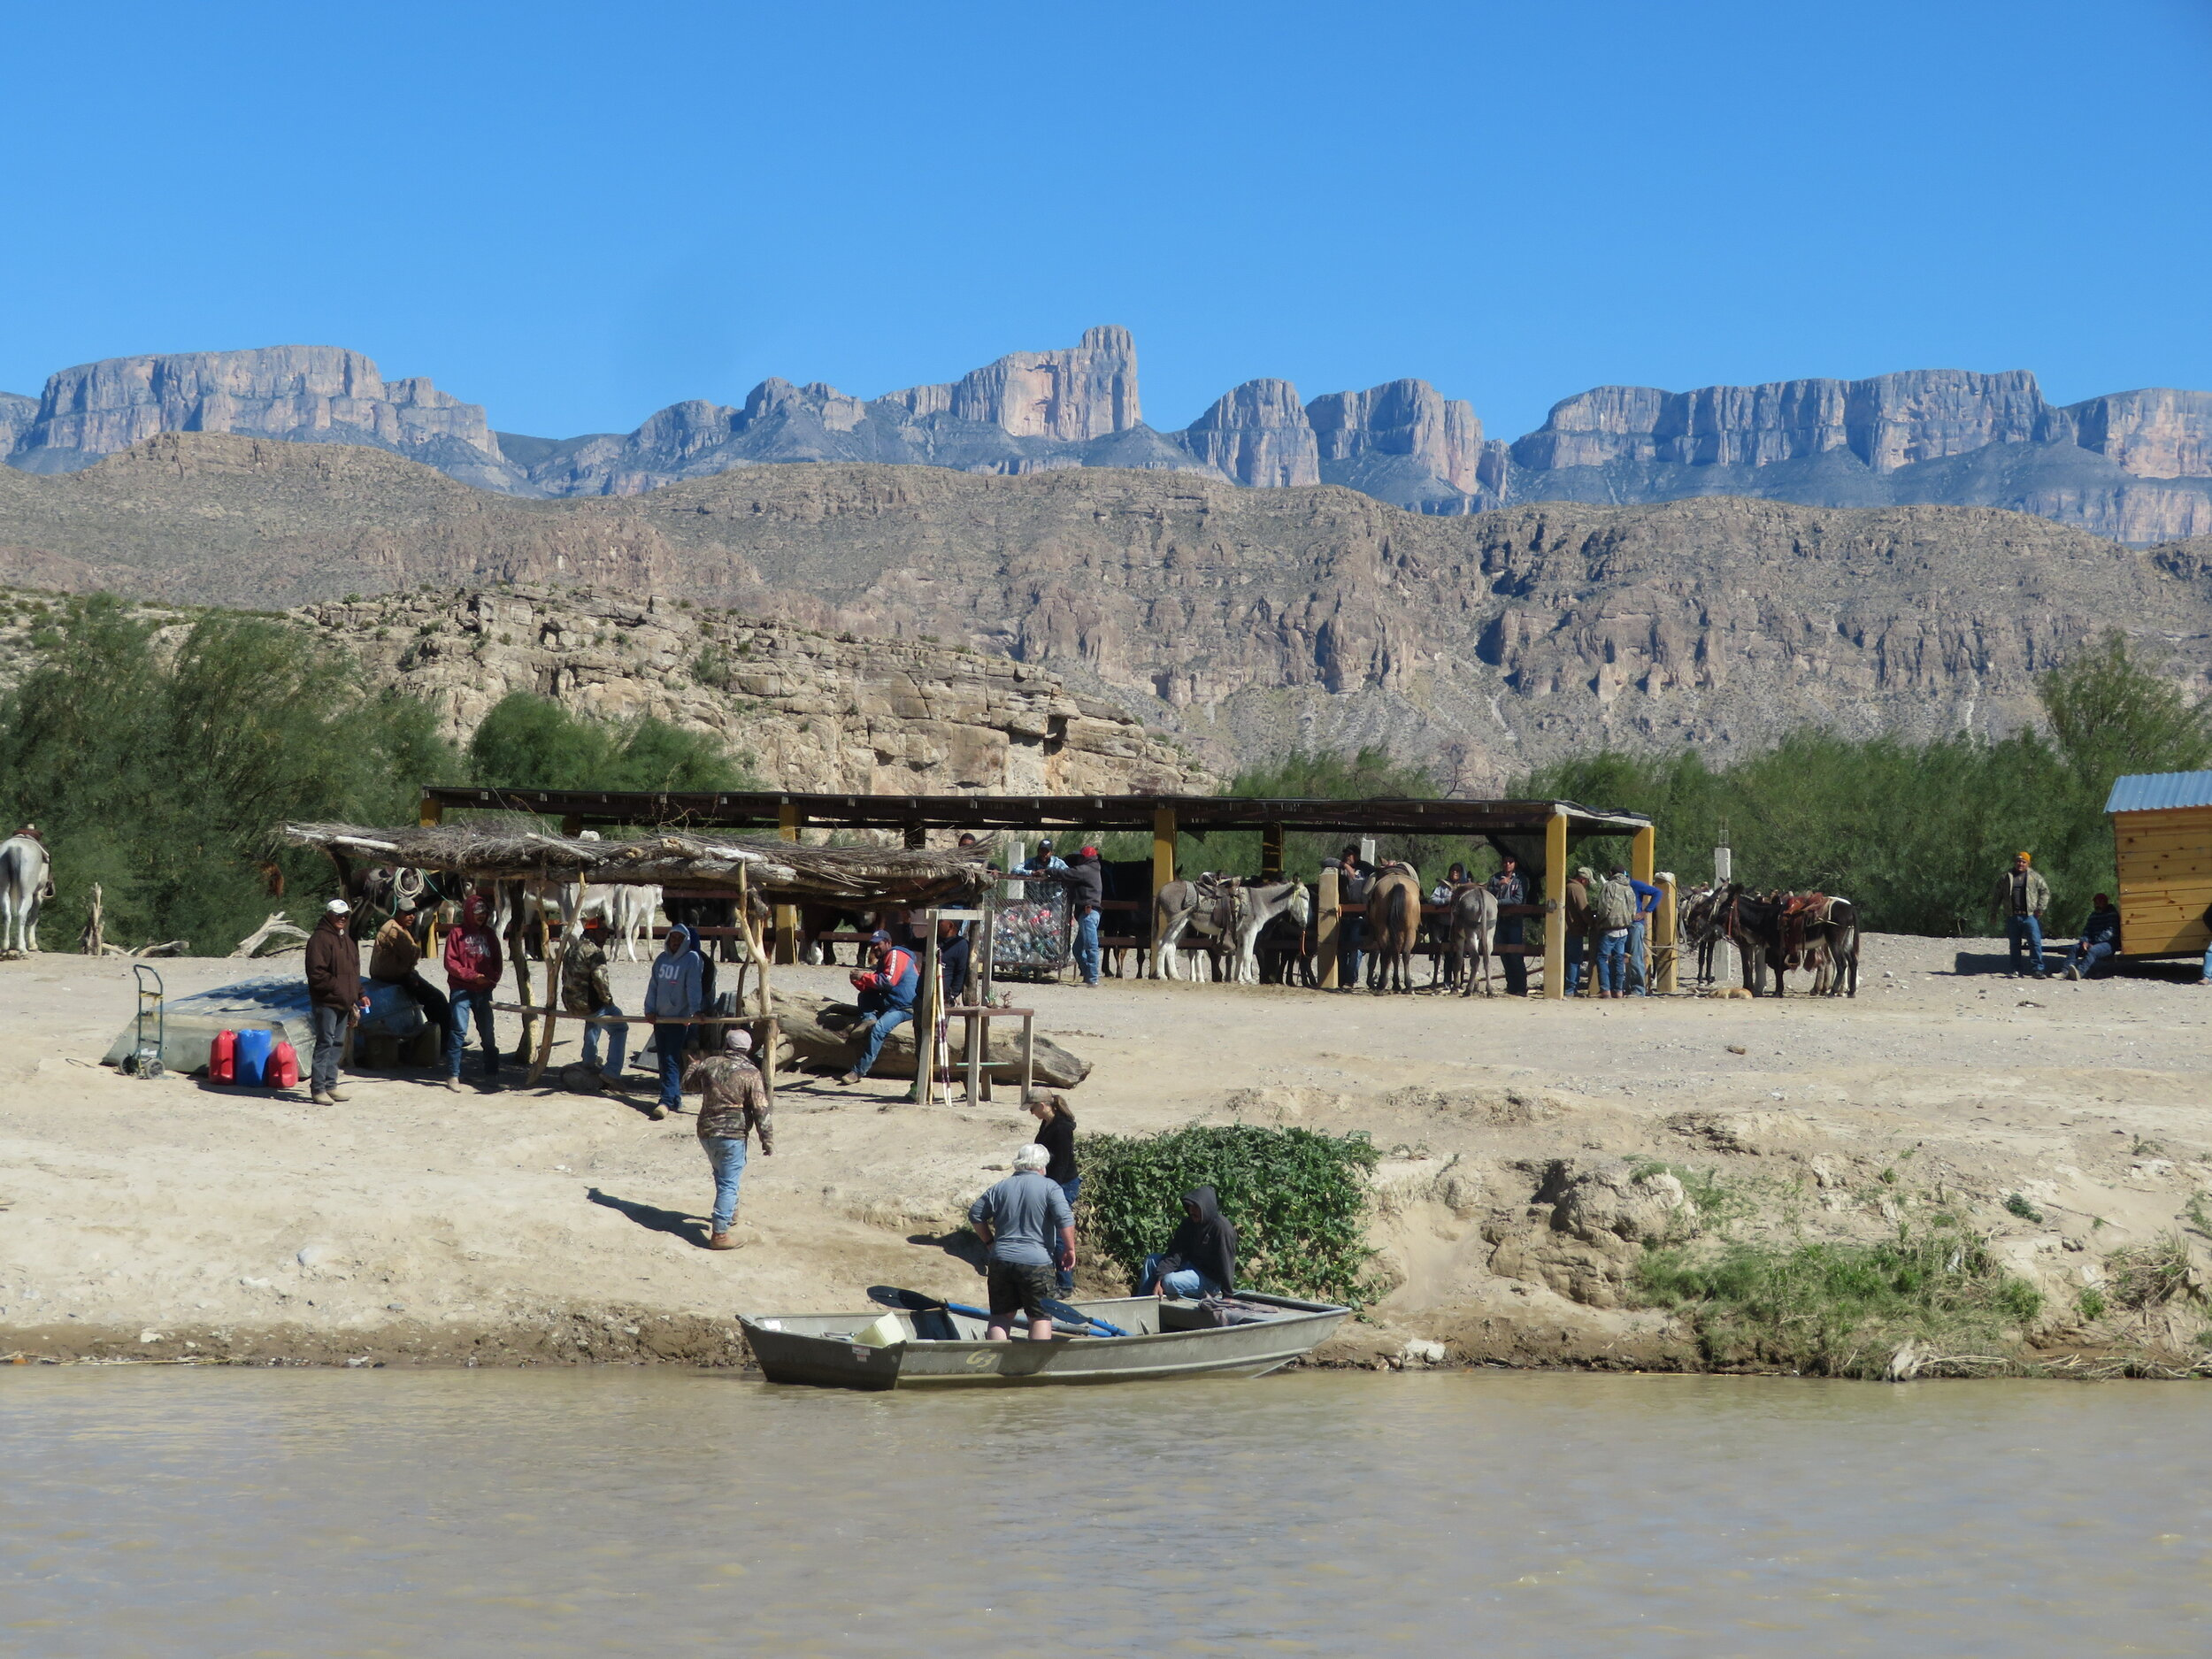 We planned our border crossing to Boquillas, Mexico for the next morning. David will tell you all about it in his next Blue View video… I don't want to spoil the fun.